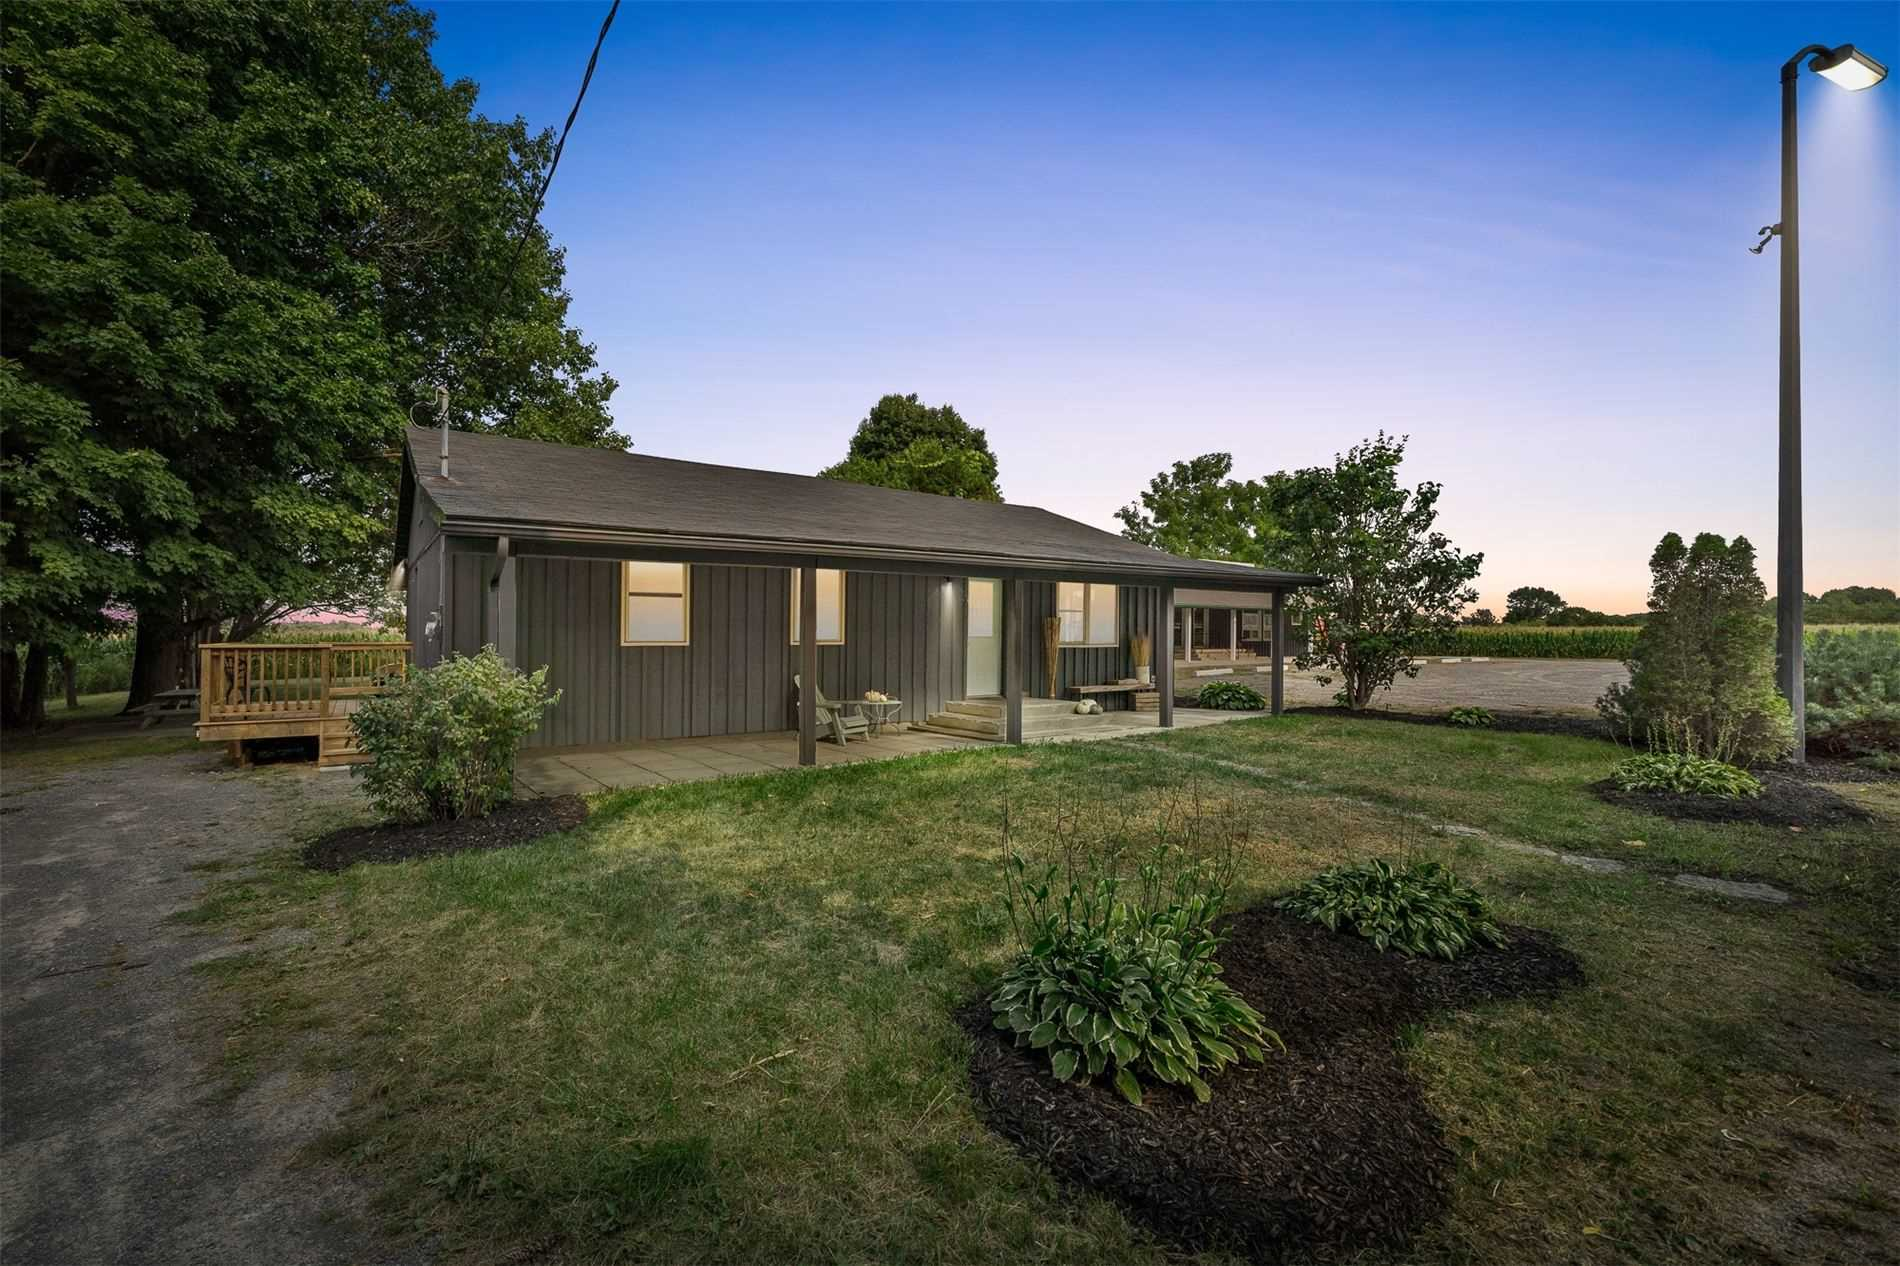 2052 Cty.Rd.18 Rd, Prince Edward County, Ontario K0K 2T0, 2 Bedrooms Bedrooms, ,2 BathroomsBathrooms,Detached,For Sale,Cty.Rd.18,X4919749